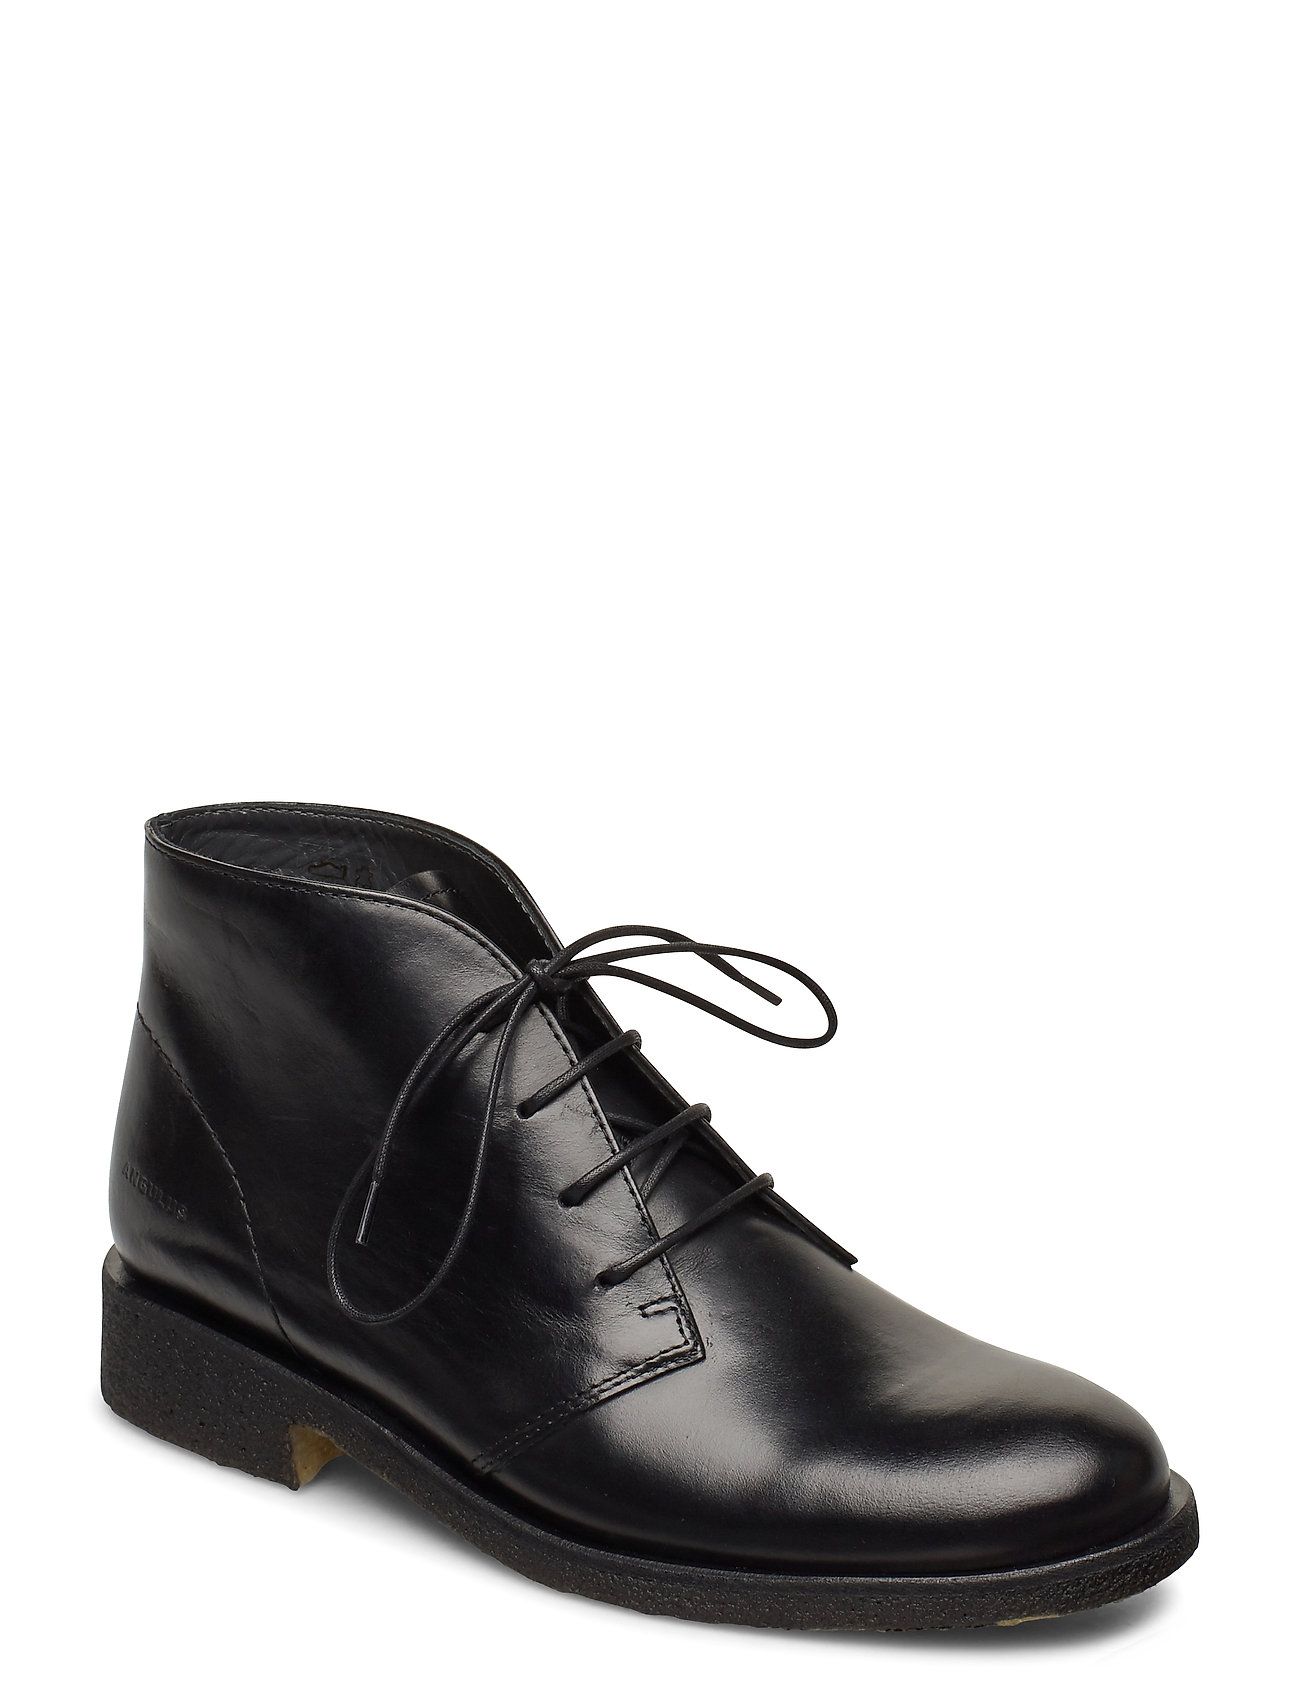 Image of Booties - Flat Shoes Boots Ankle Boots Ankle Boot - Flat Sort ANGULUS (3435716737)